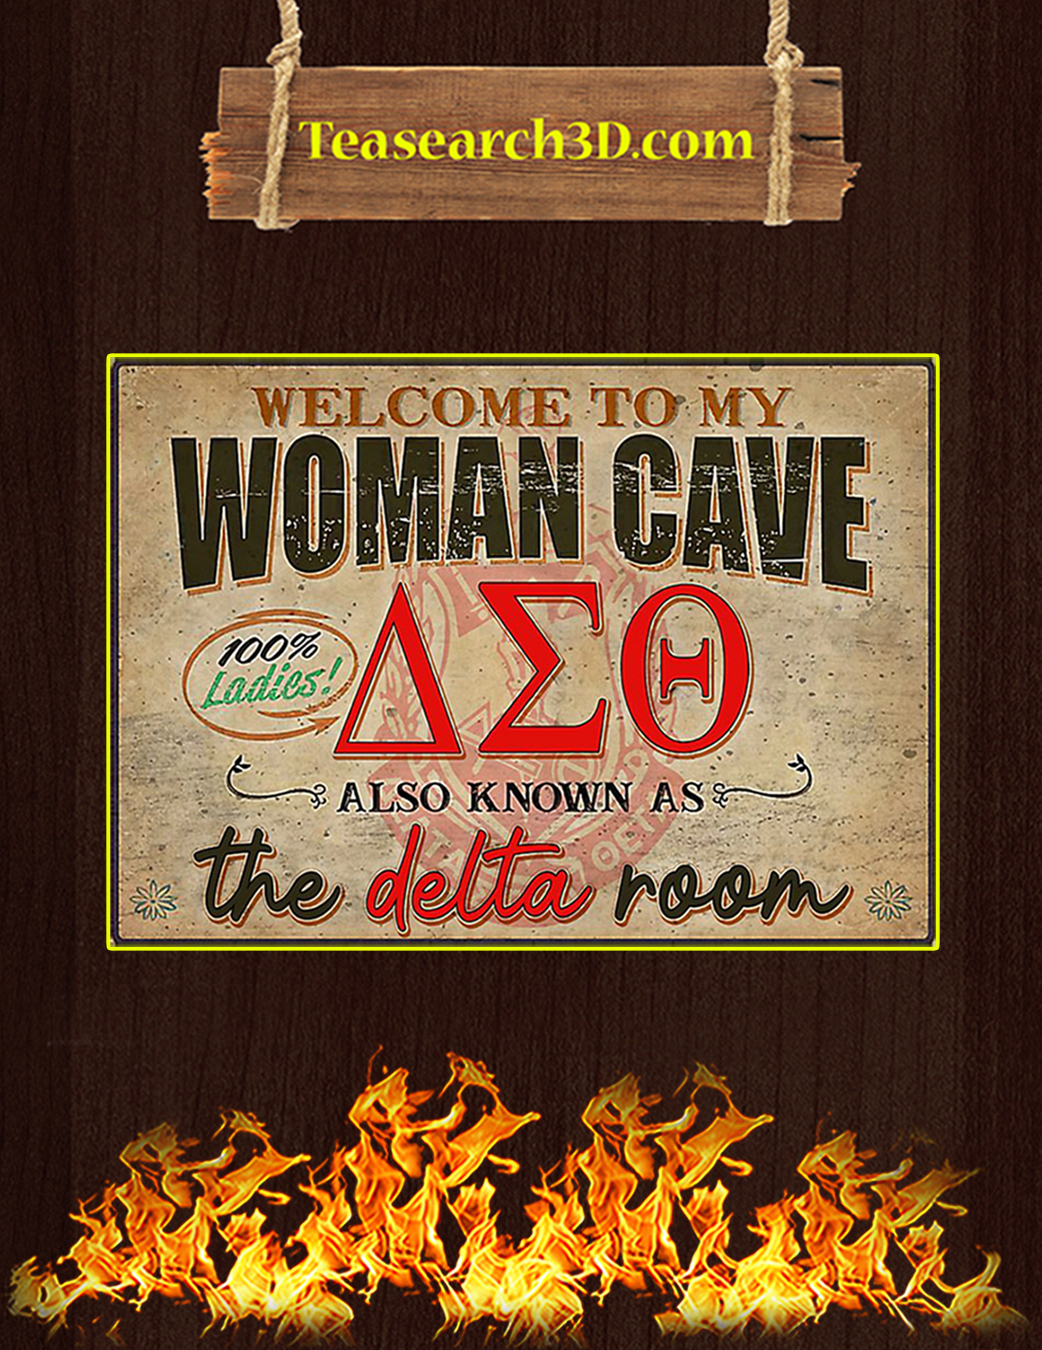 Welcome to my woman cave the delta room poster A1